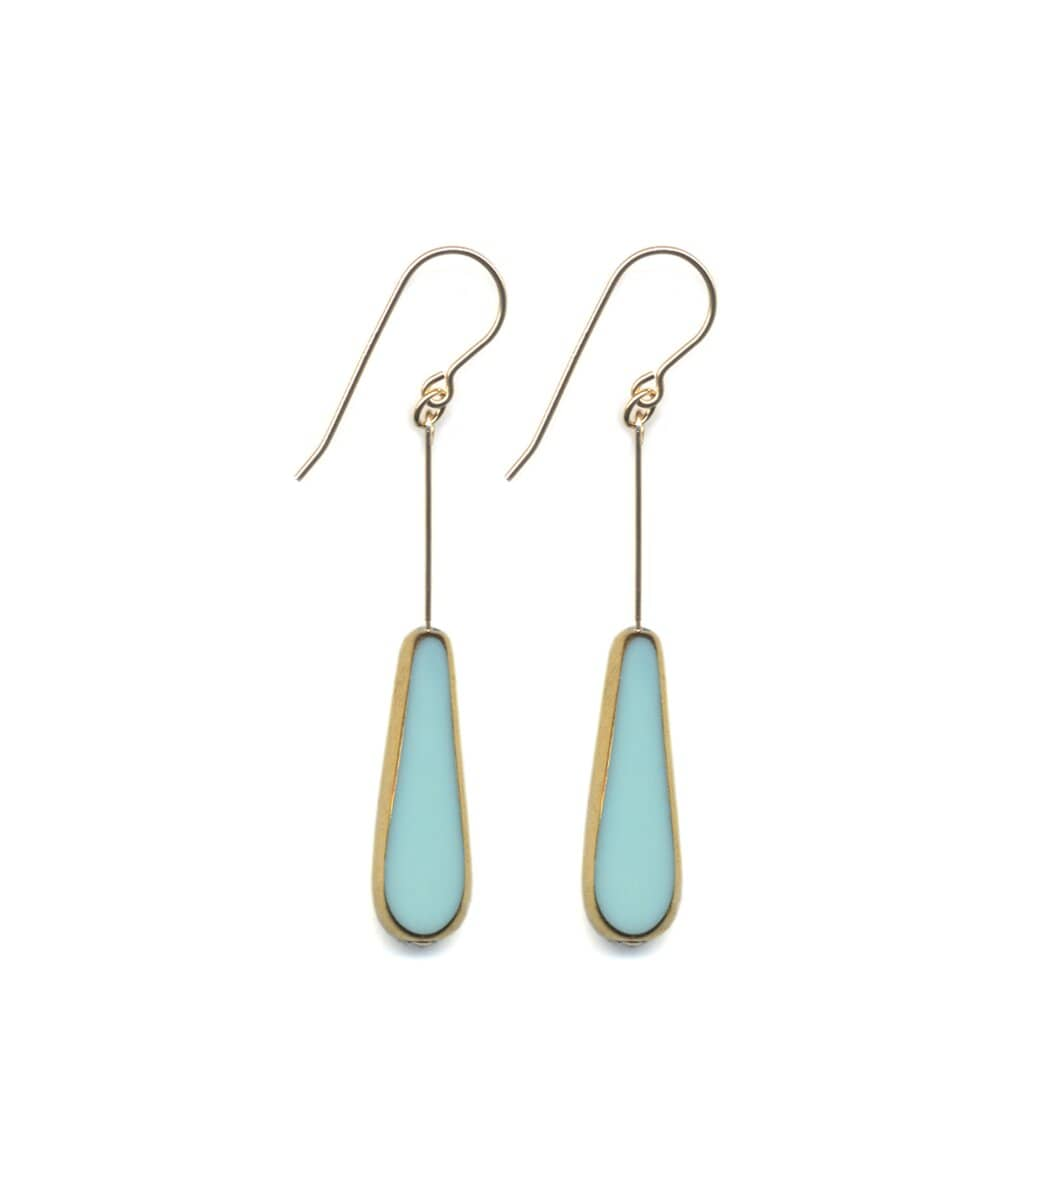 Irk Jewelry I. Ronni Kappos E1676 Aqua Tear Earrings